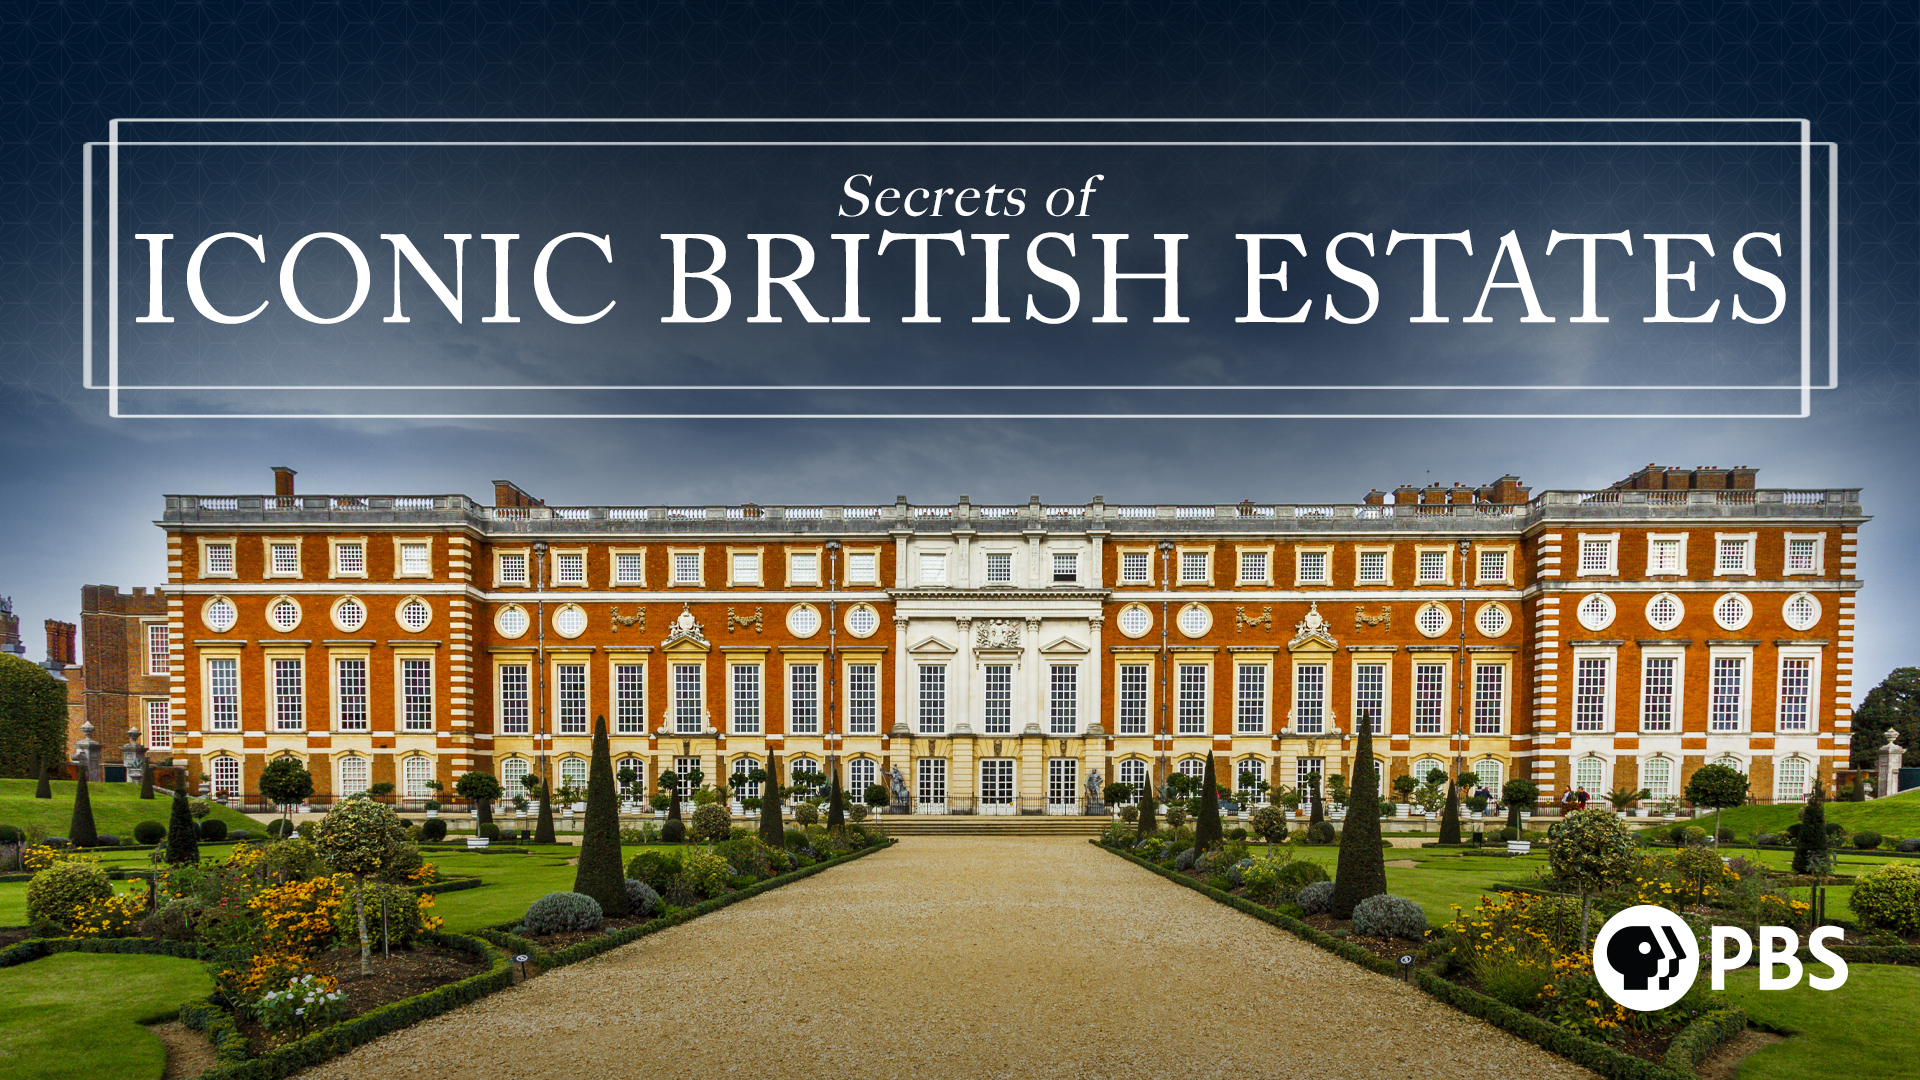 Secrets of Iconic British Estates: Season 1